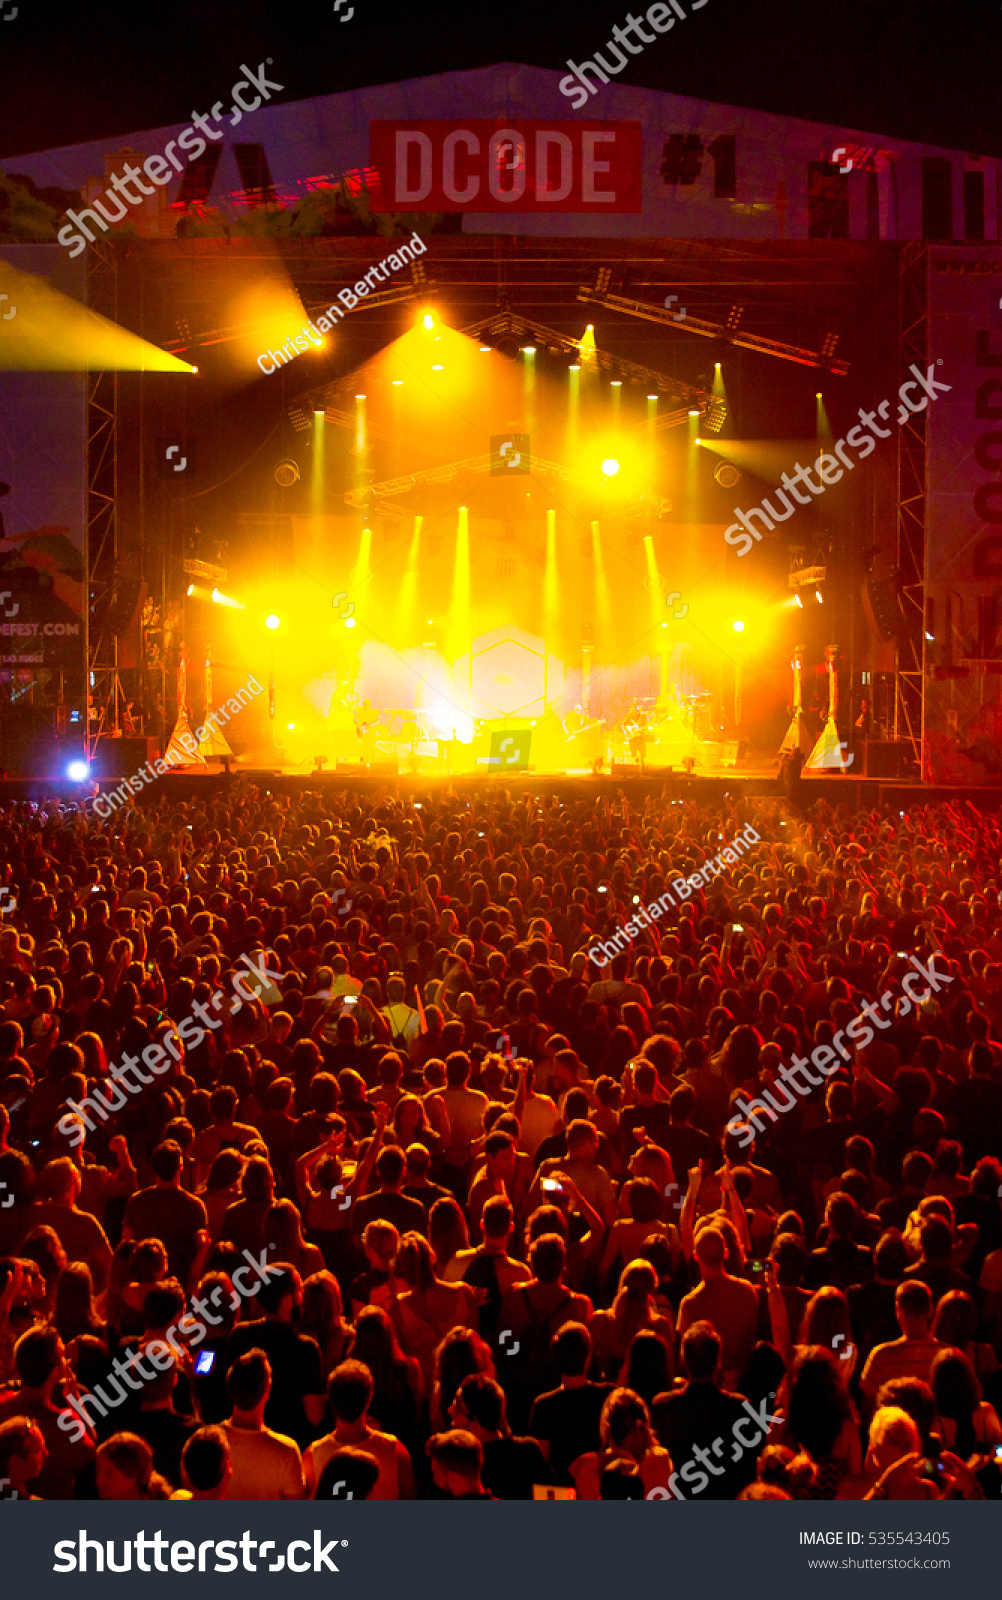 MADRID - SEP 10: The crowd in a concert at Dcode Music Festival on September 10, 2016 in Madrid, Spain. #535543405